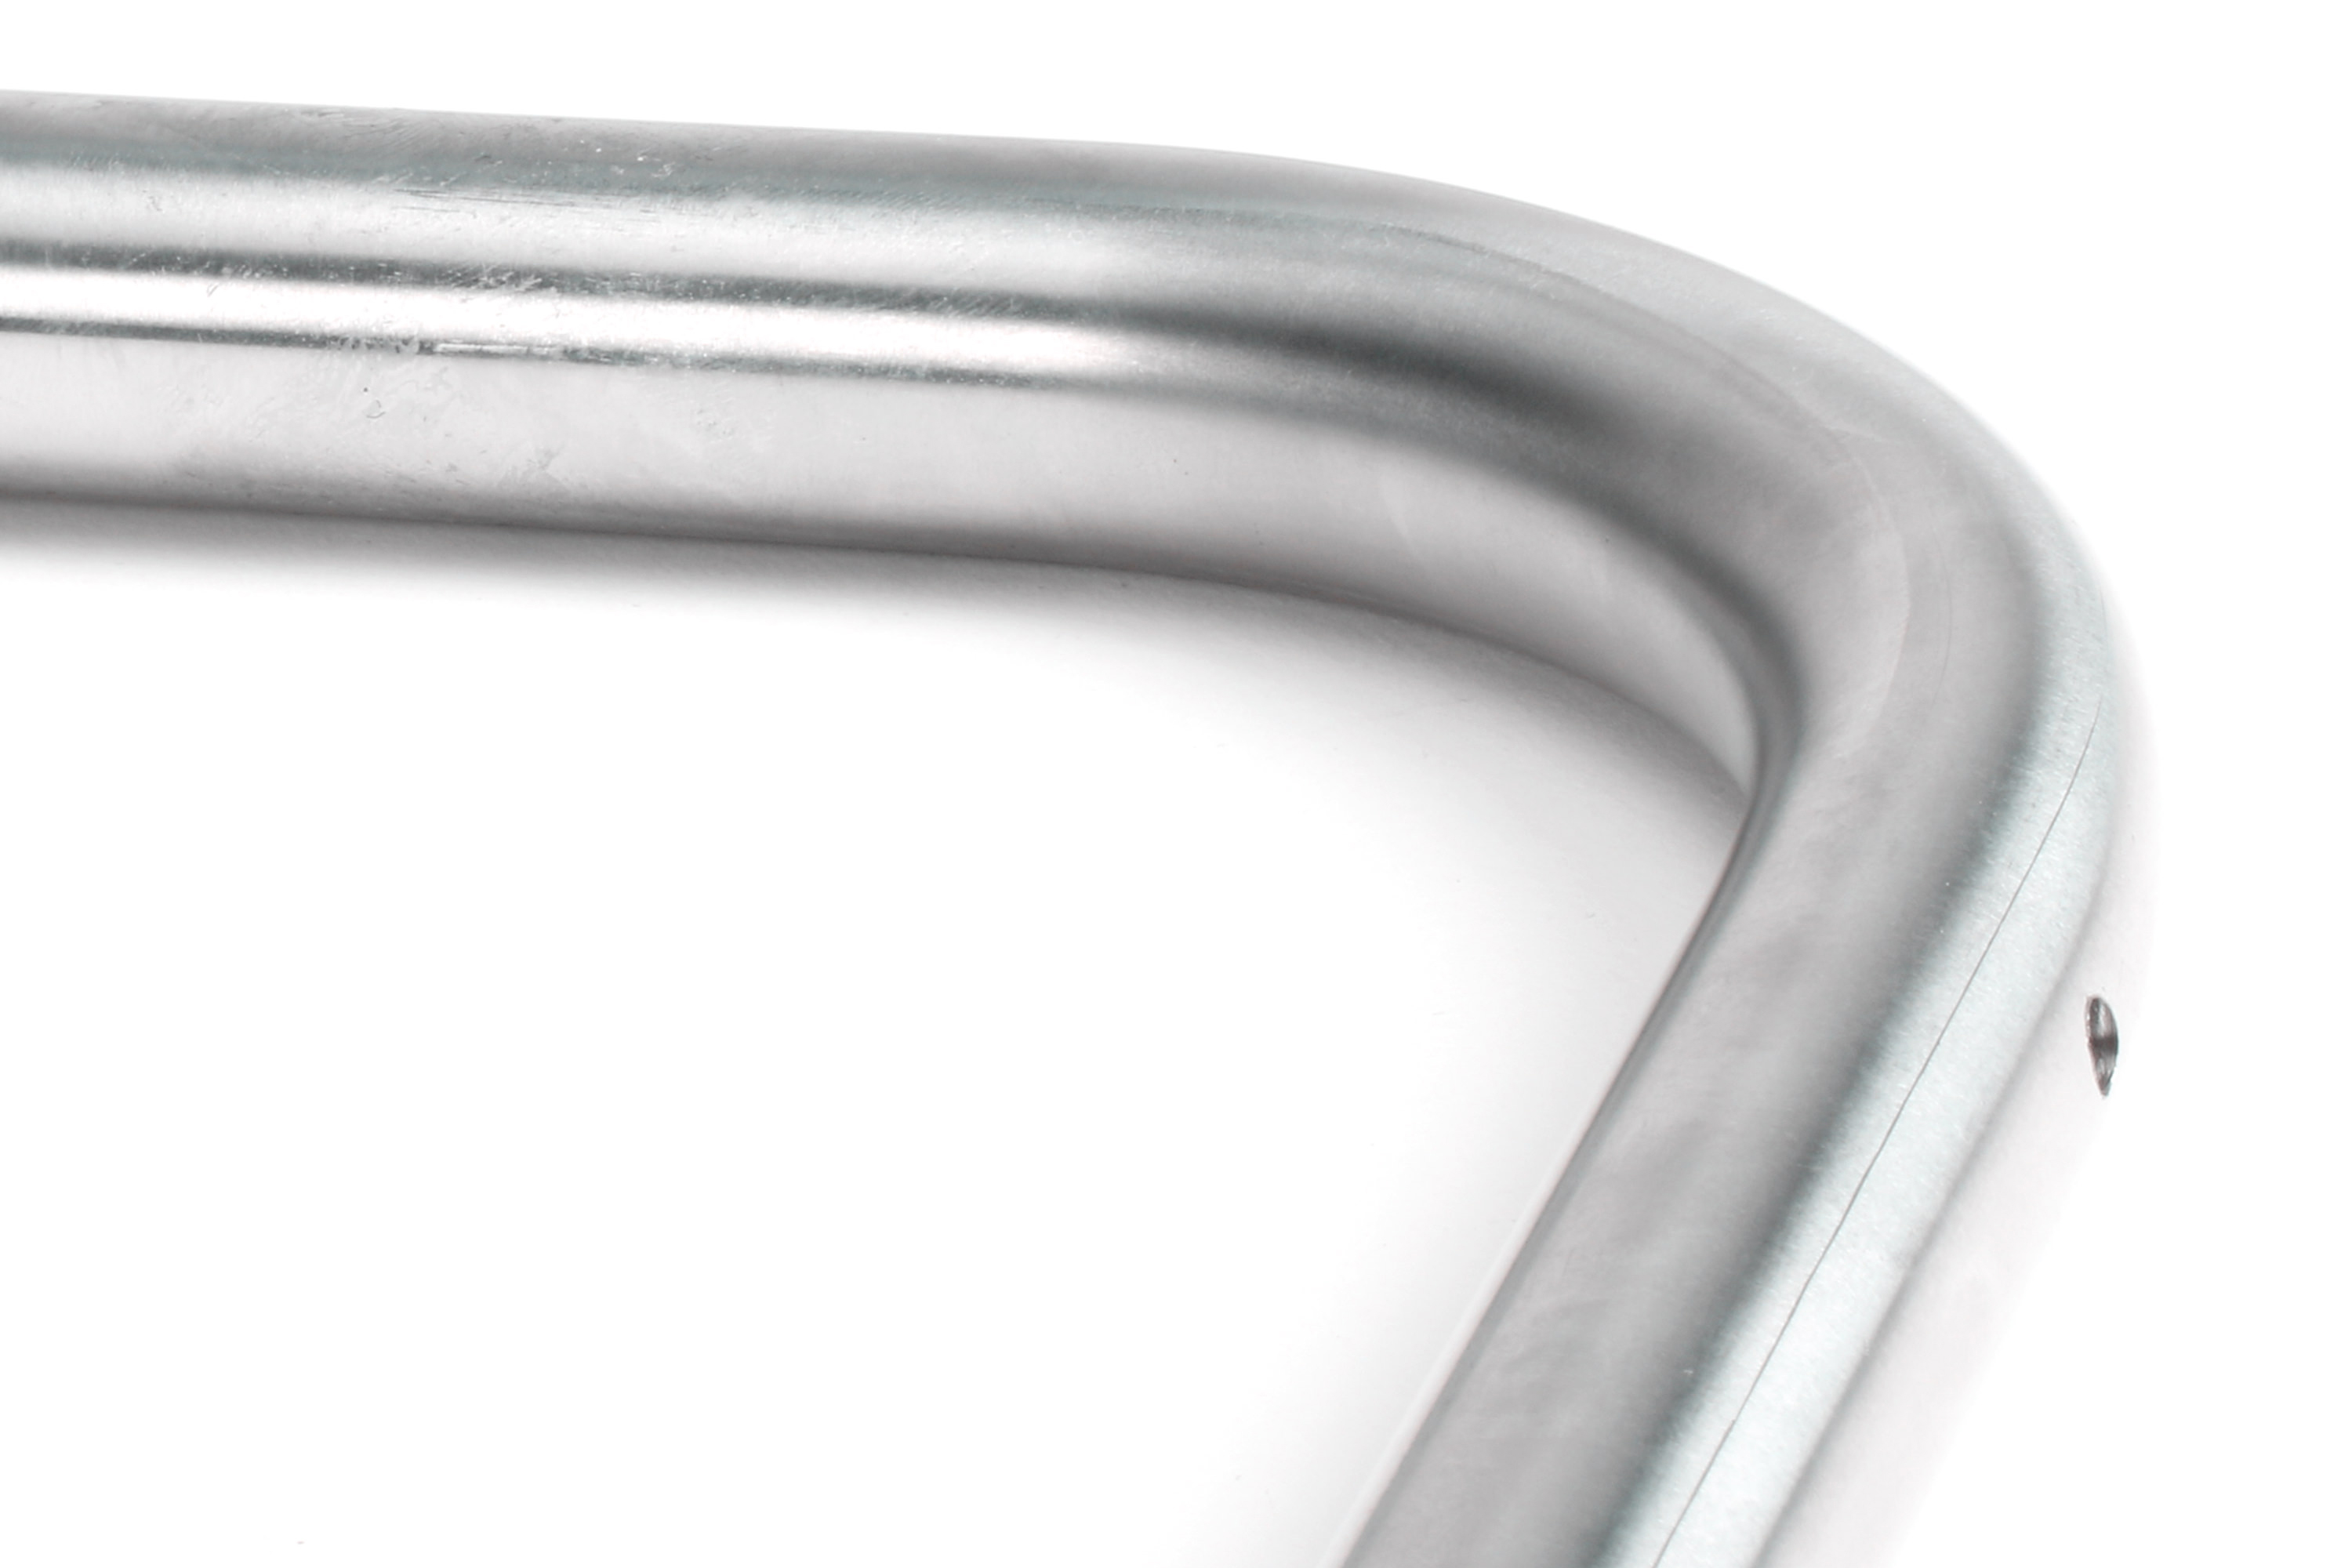 High-tensile and bendable tubes for cantilever chairs